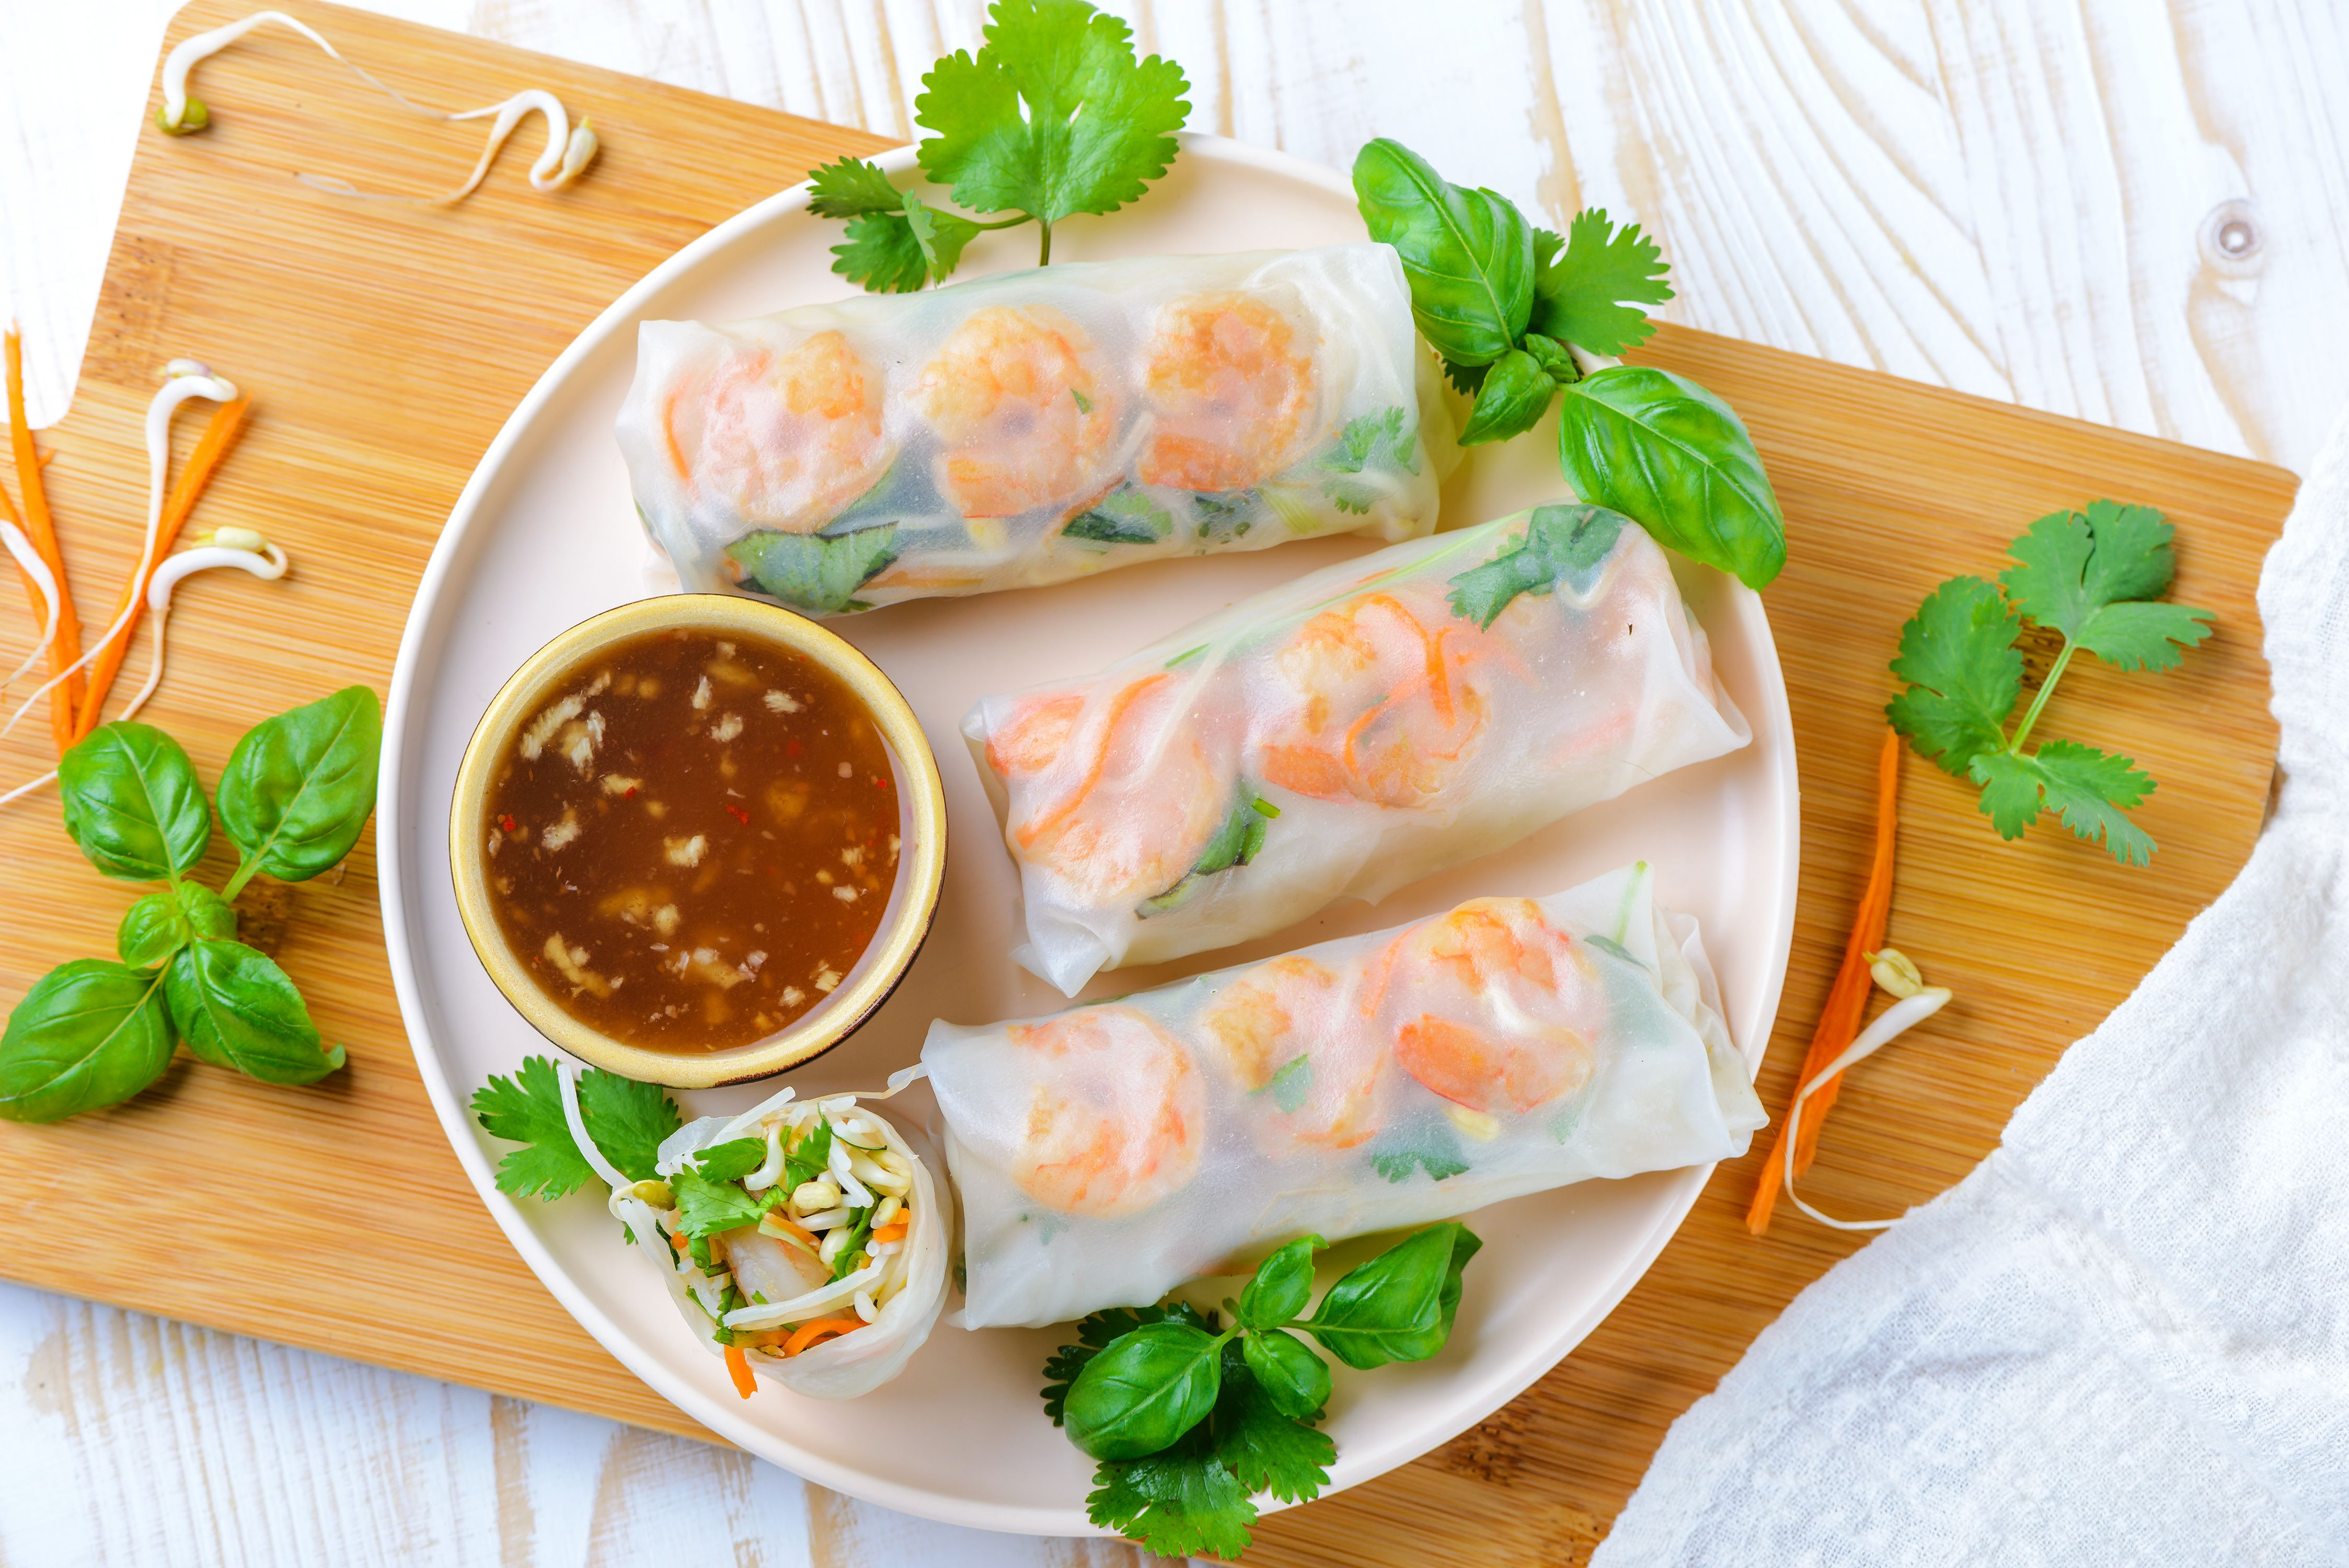 Thai fresh spring rolls with dipping sauce on a cutting board, garnished with Thai basil and cilantro